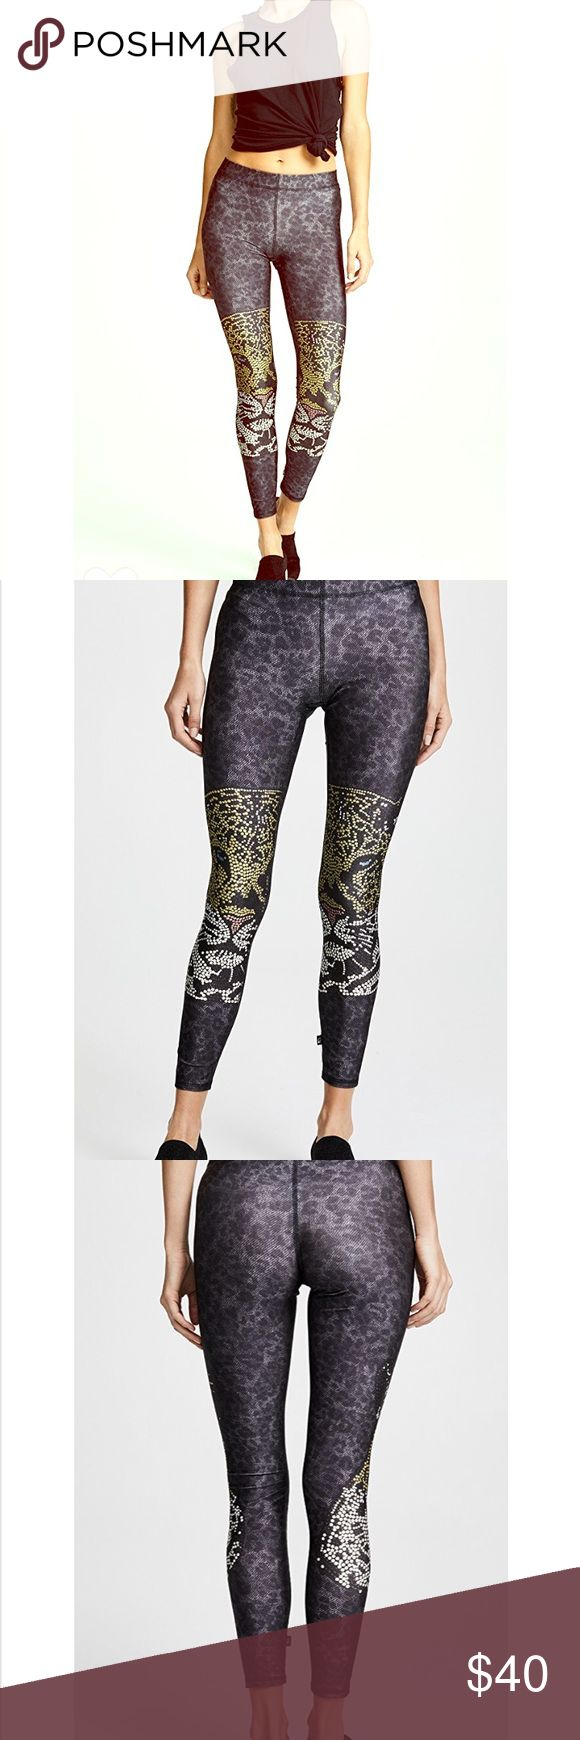 Terez leopard leggings Excellent condition- only worn once.  Size xs Terez leopard leggings. Currently on Shopbop for $78. Please no trades & only reasonable offers considered. Thank you! Terez Pants Leggings